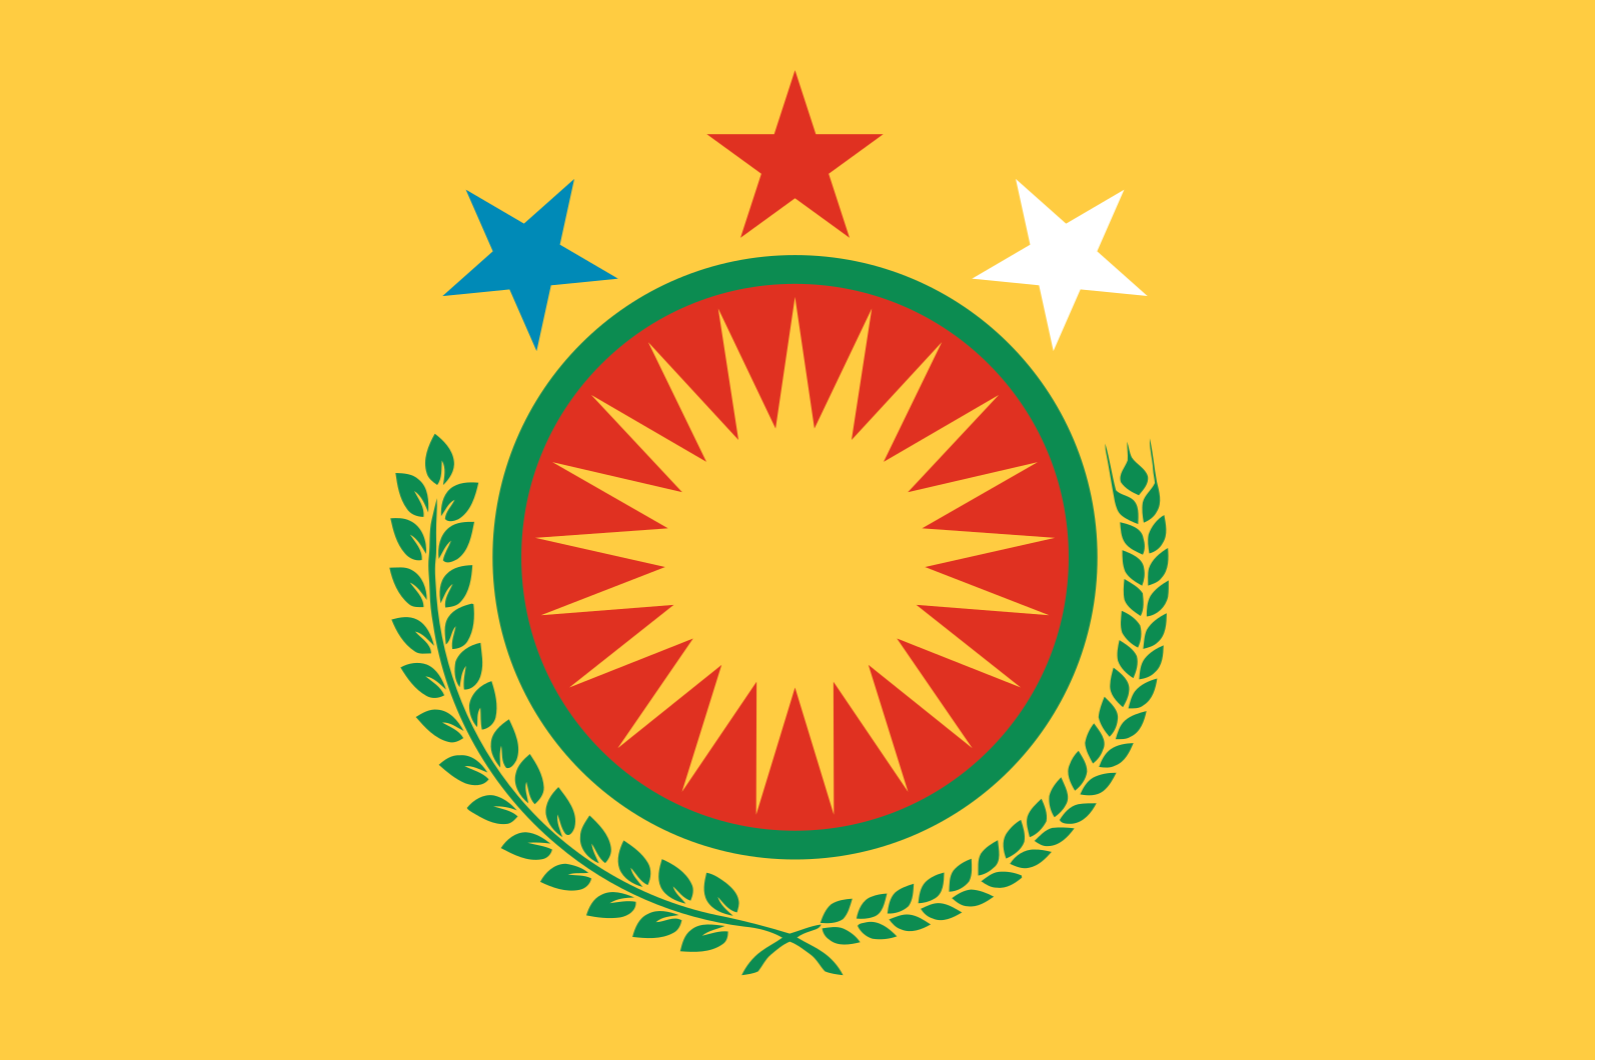 Diplomatic flag of Northern Syria; image by MrPenguin20, via wikipedia.com, public domain.